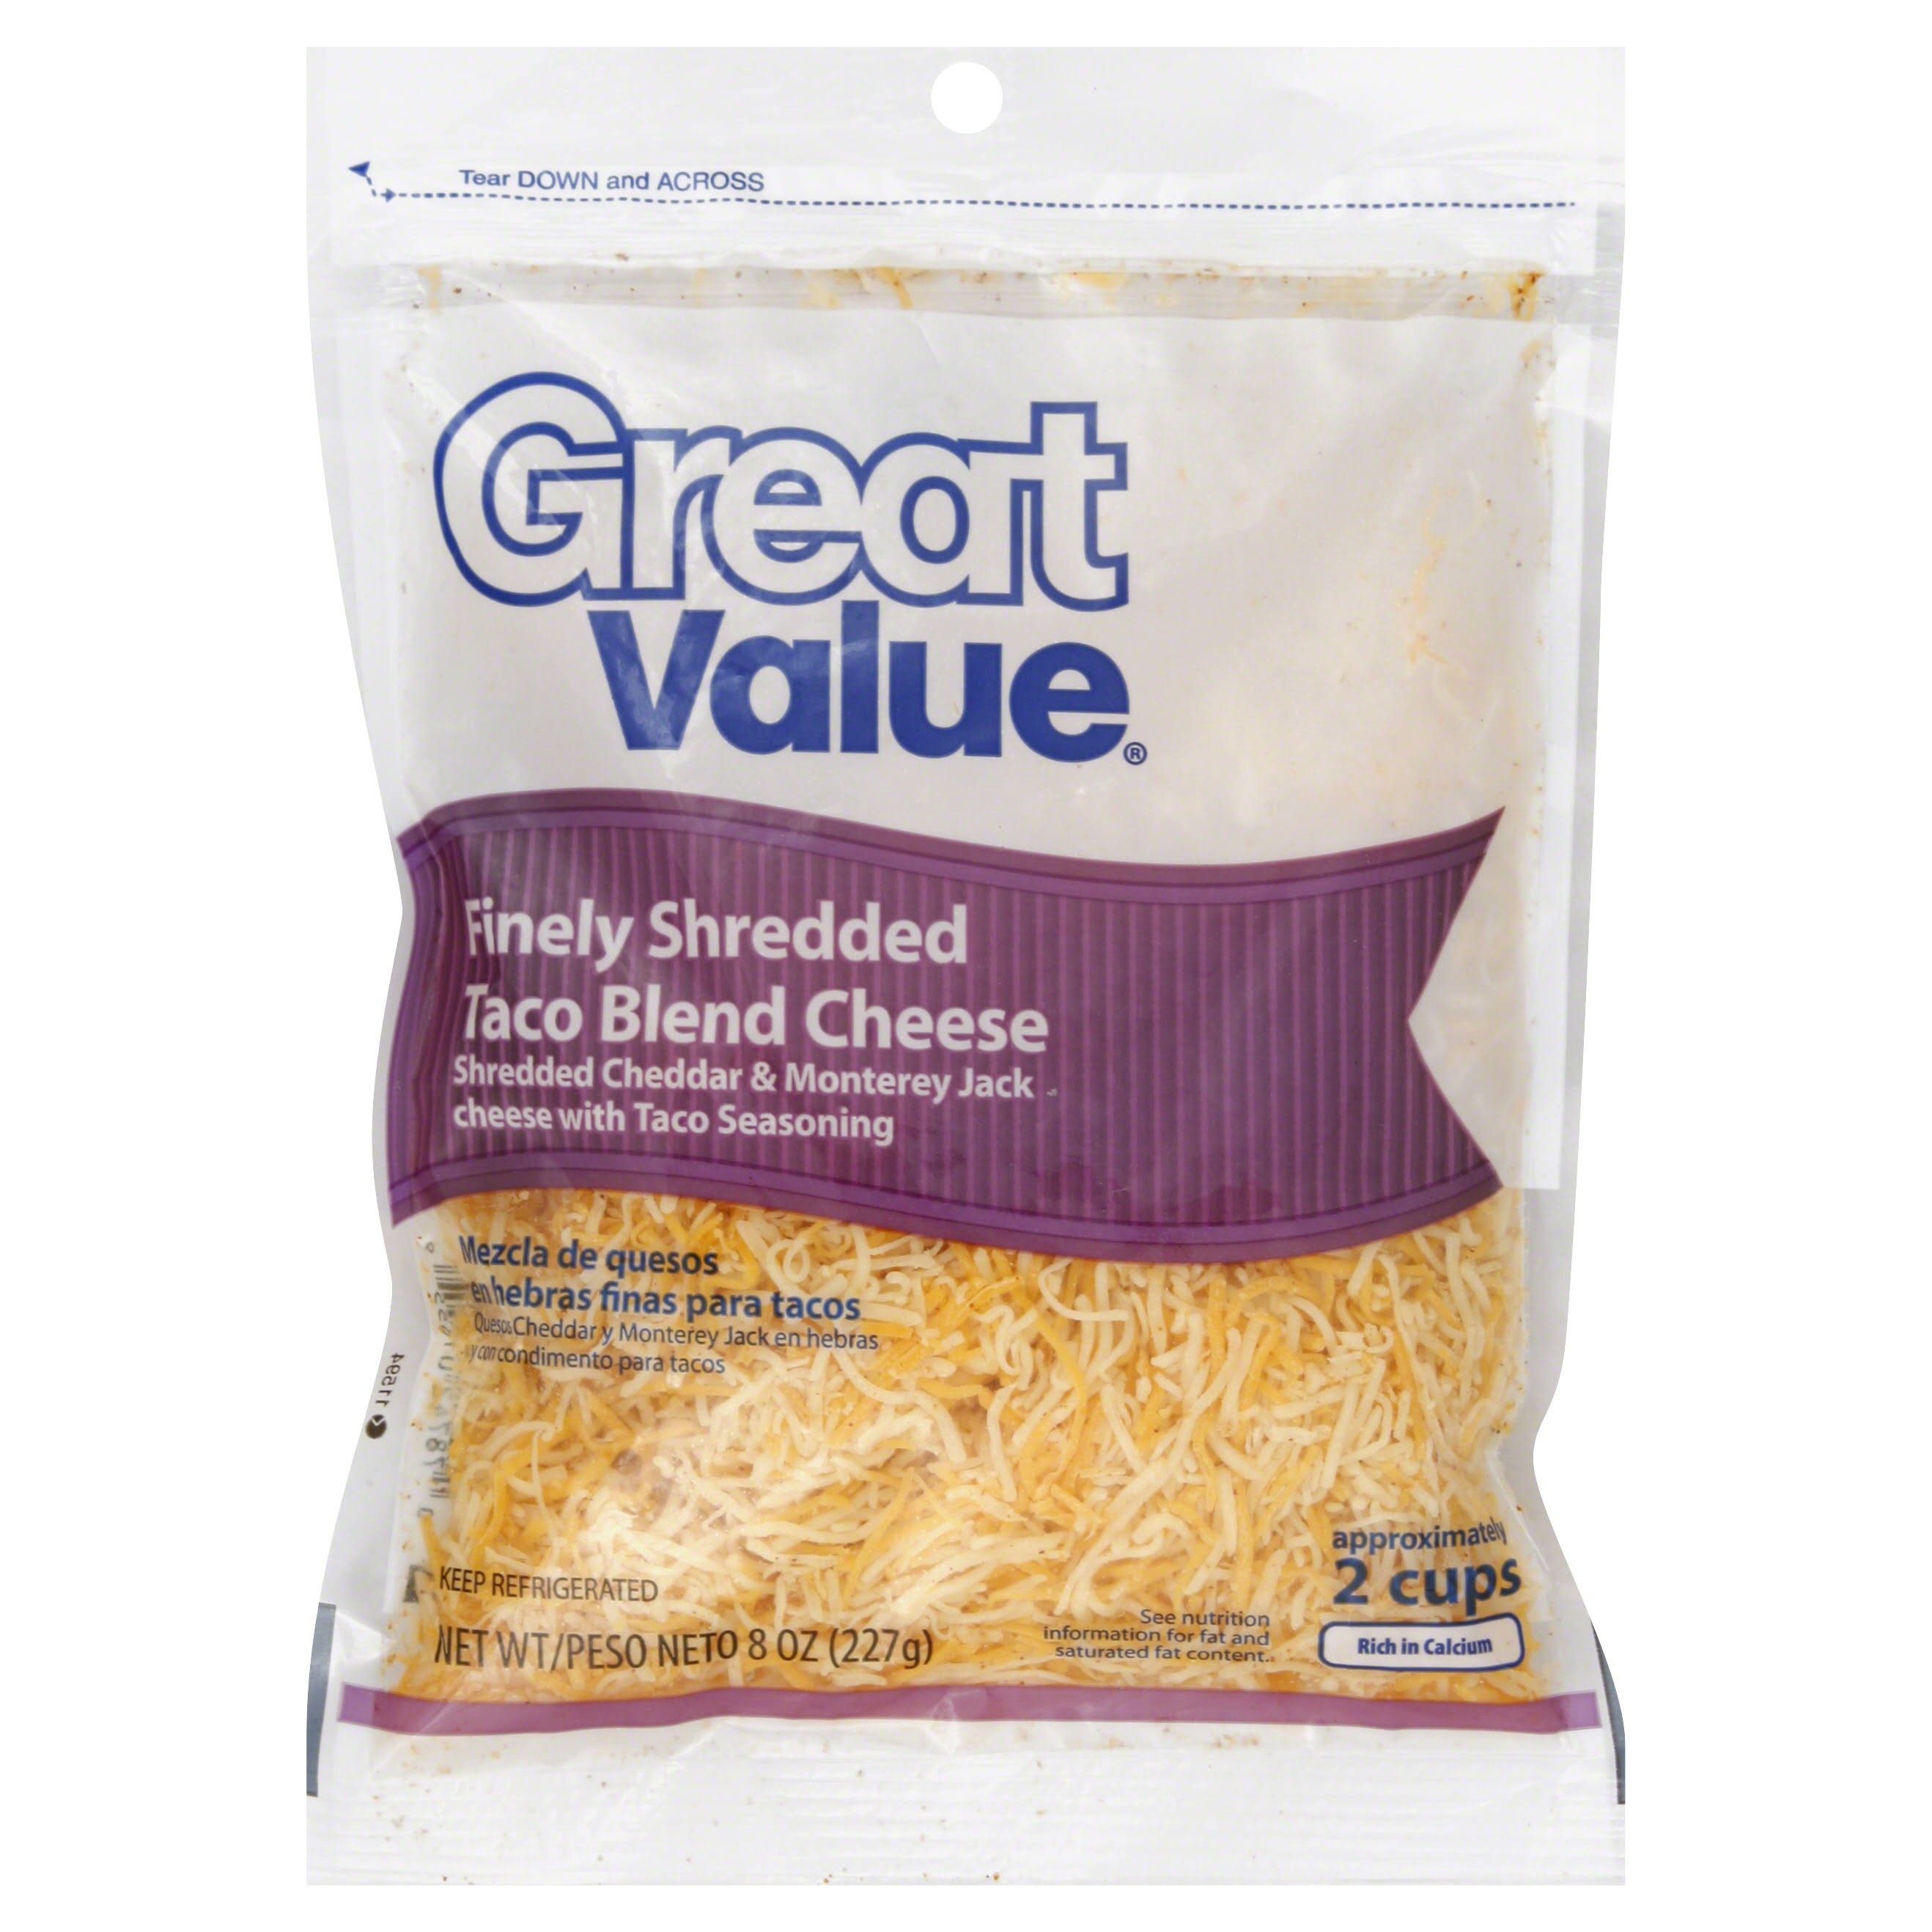 Great Value Finely Shredded Taco Blend Cheese - 8 oz